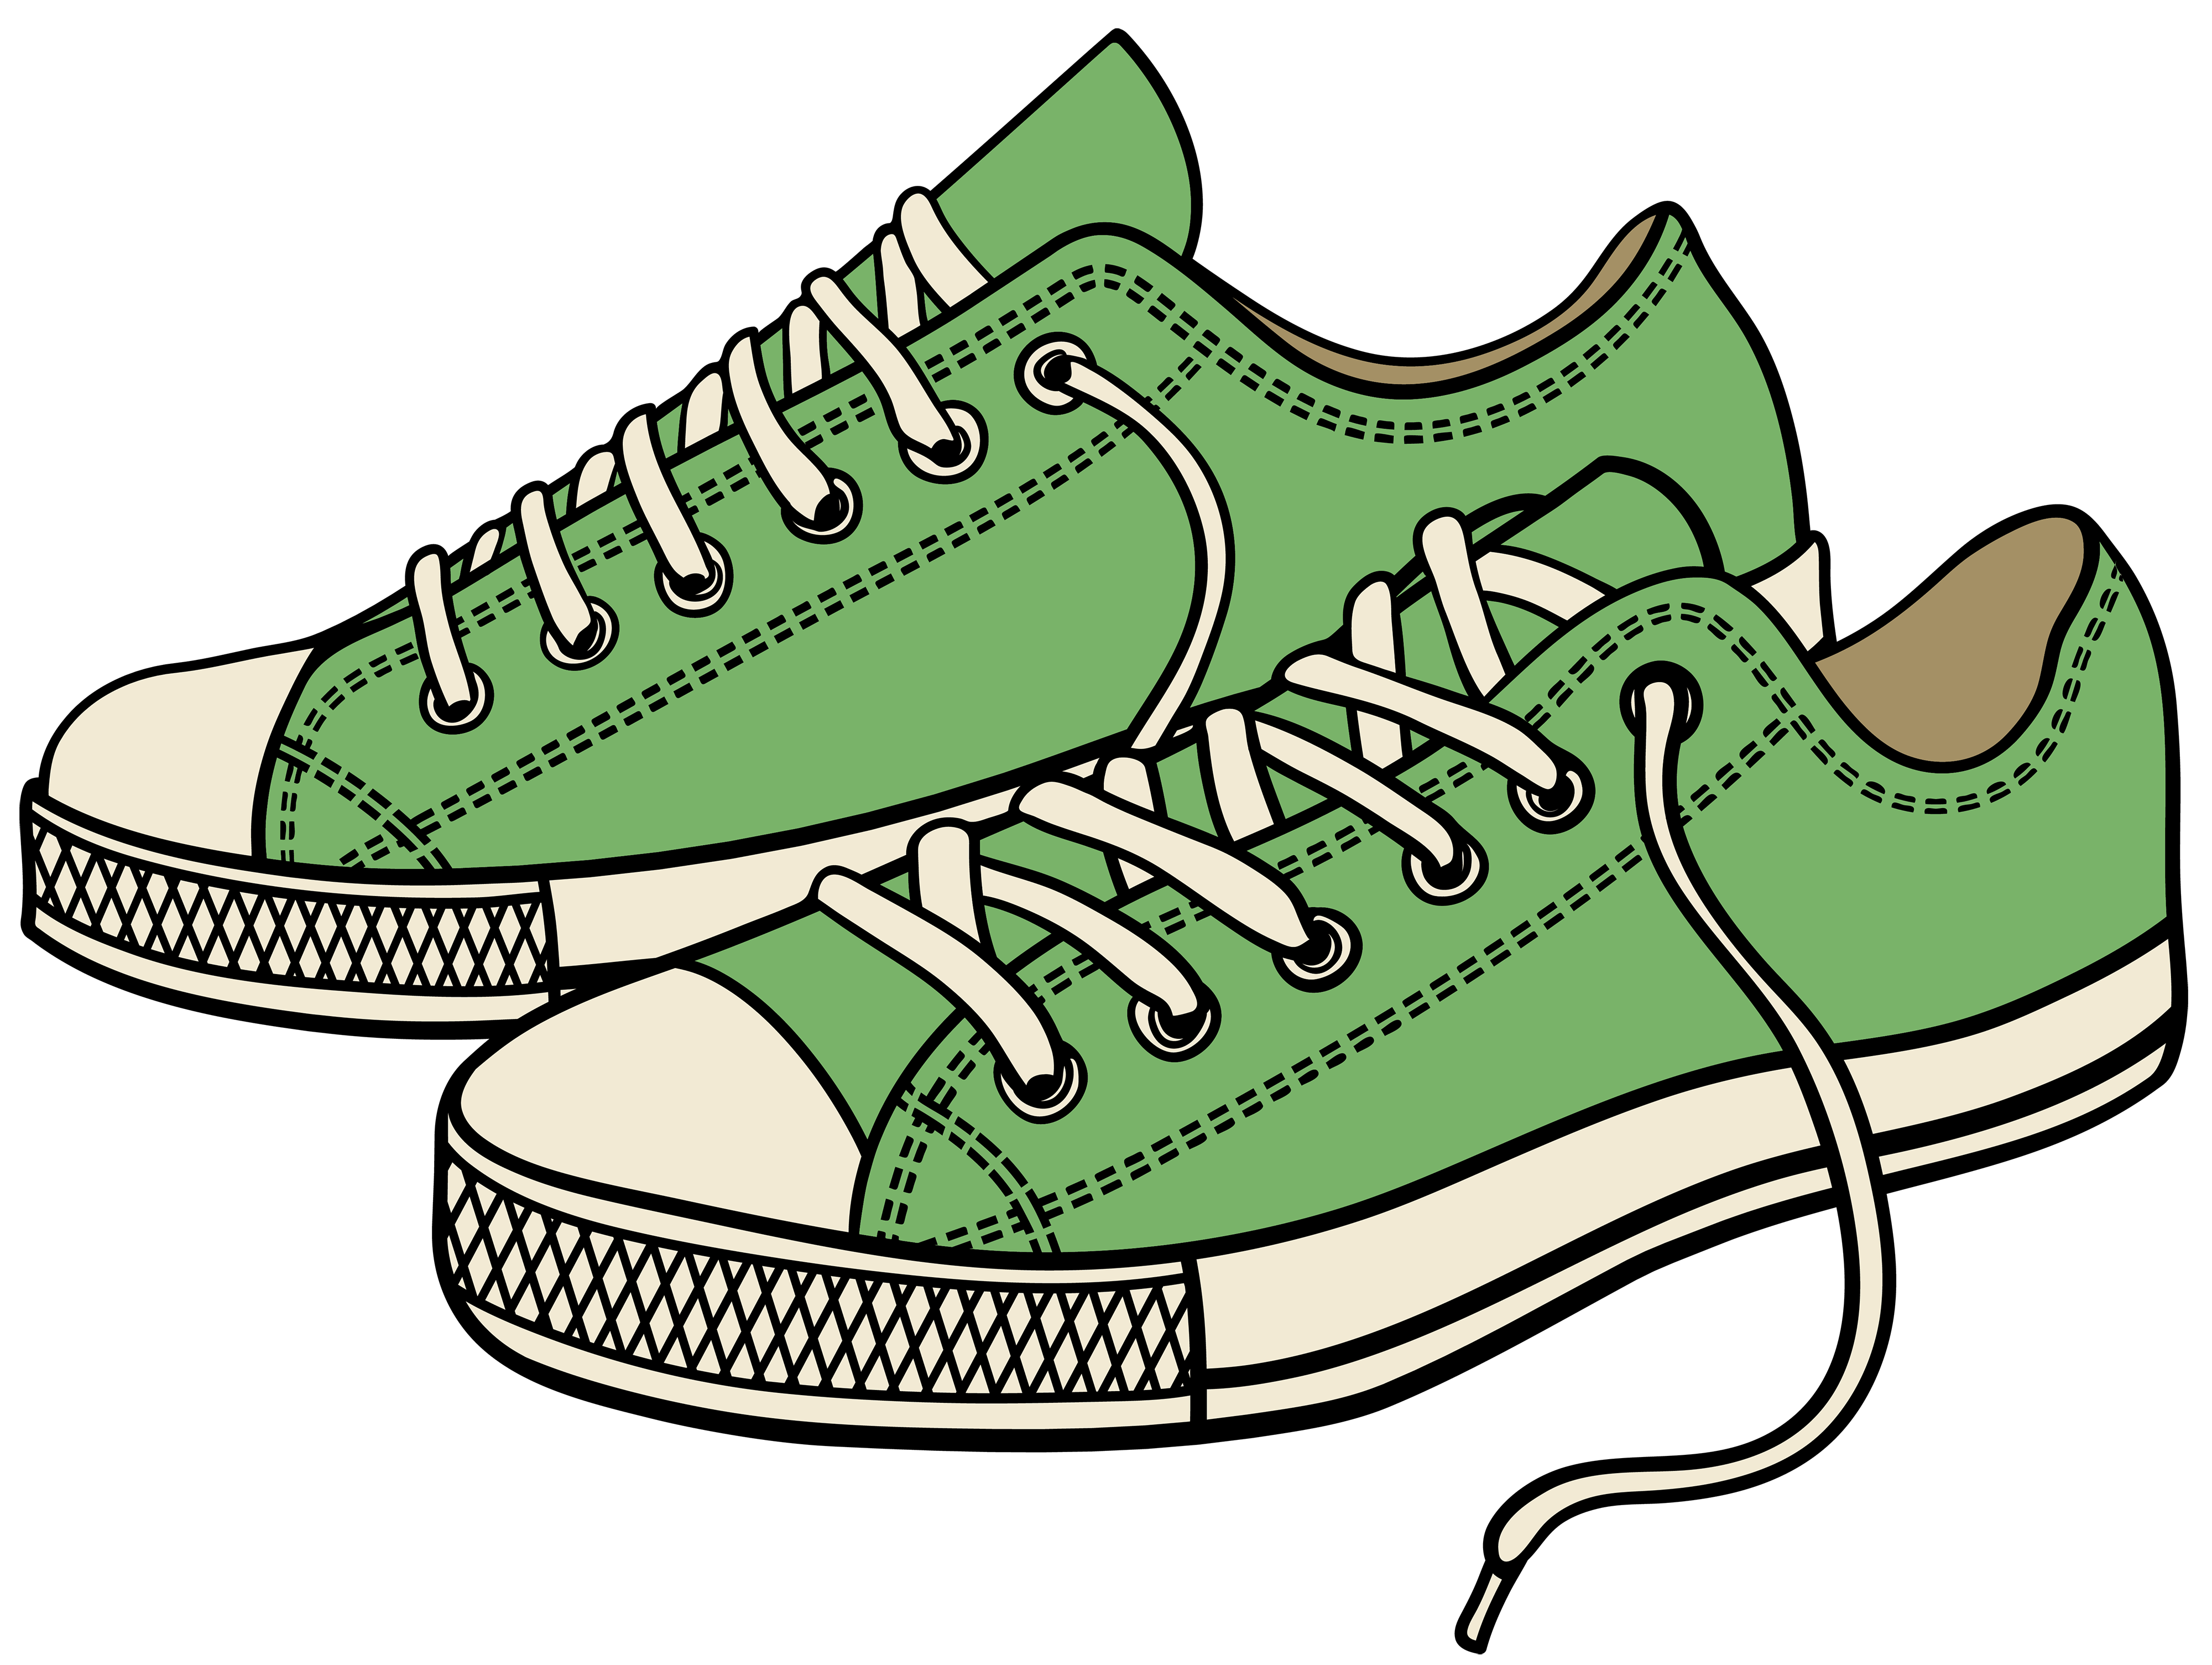 Clipart images of shoes jpg freeuse Sneakers clipart - 78 transparent clip arts, images and pictures for ... jpg freeuse